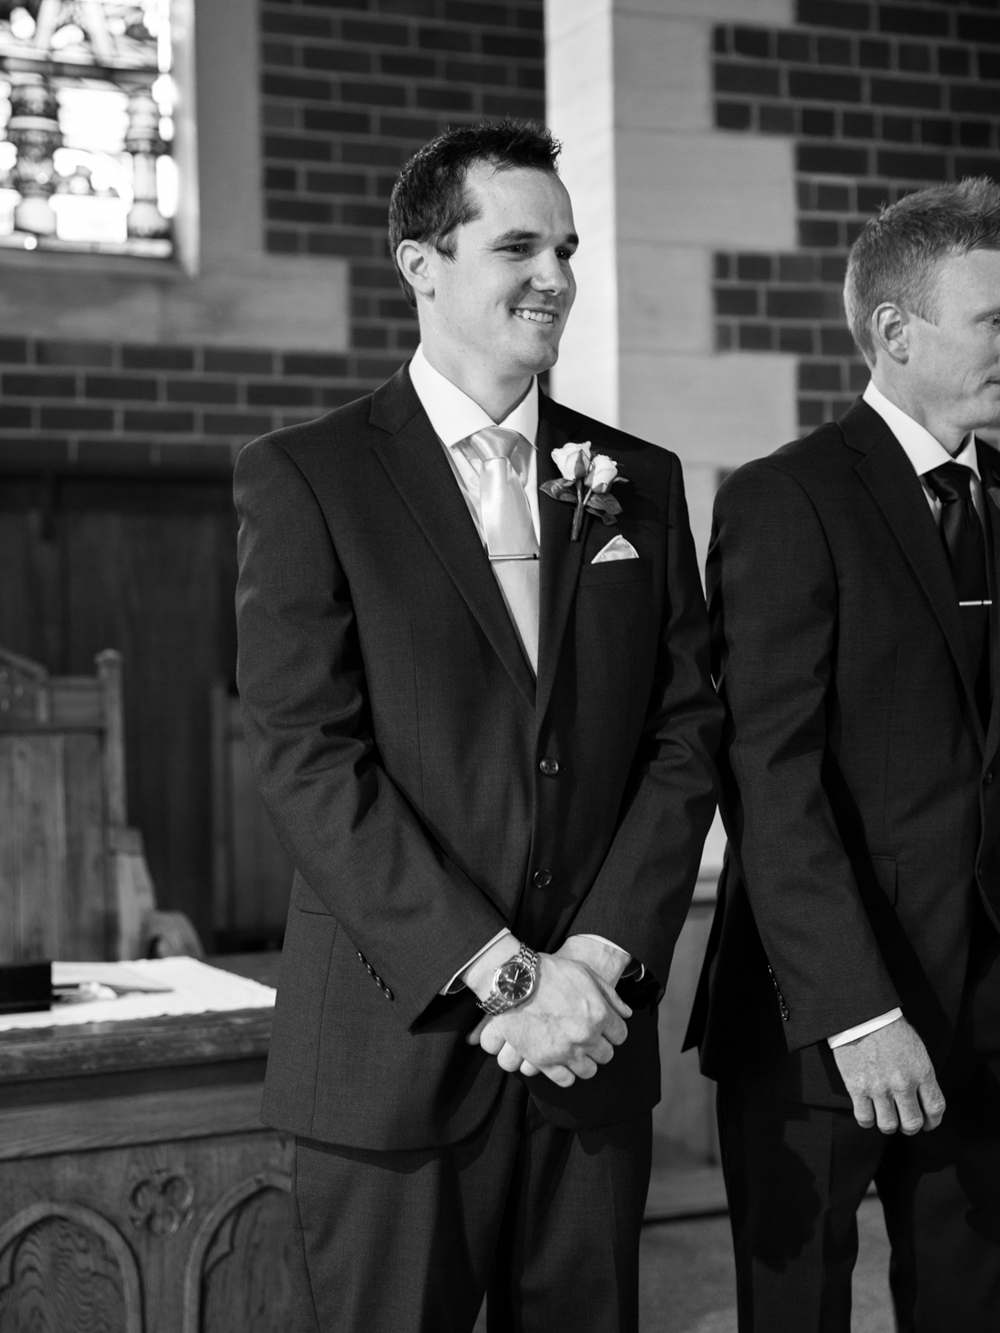 00027- Dubbo NSW Wedding Photographer Sheri McMahon.jpg